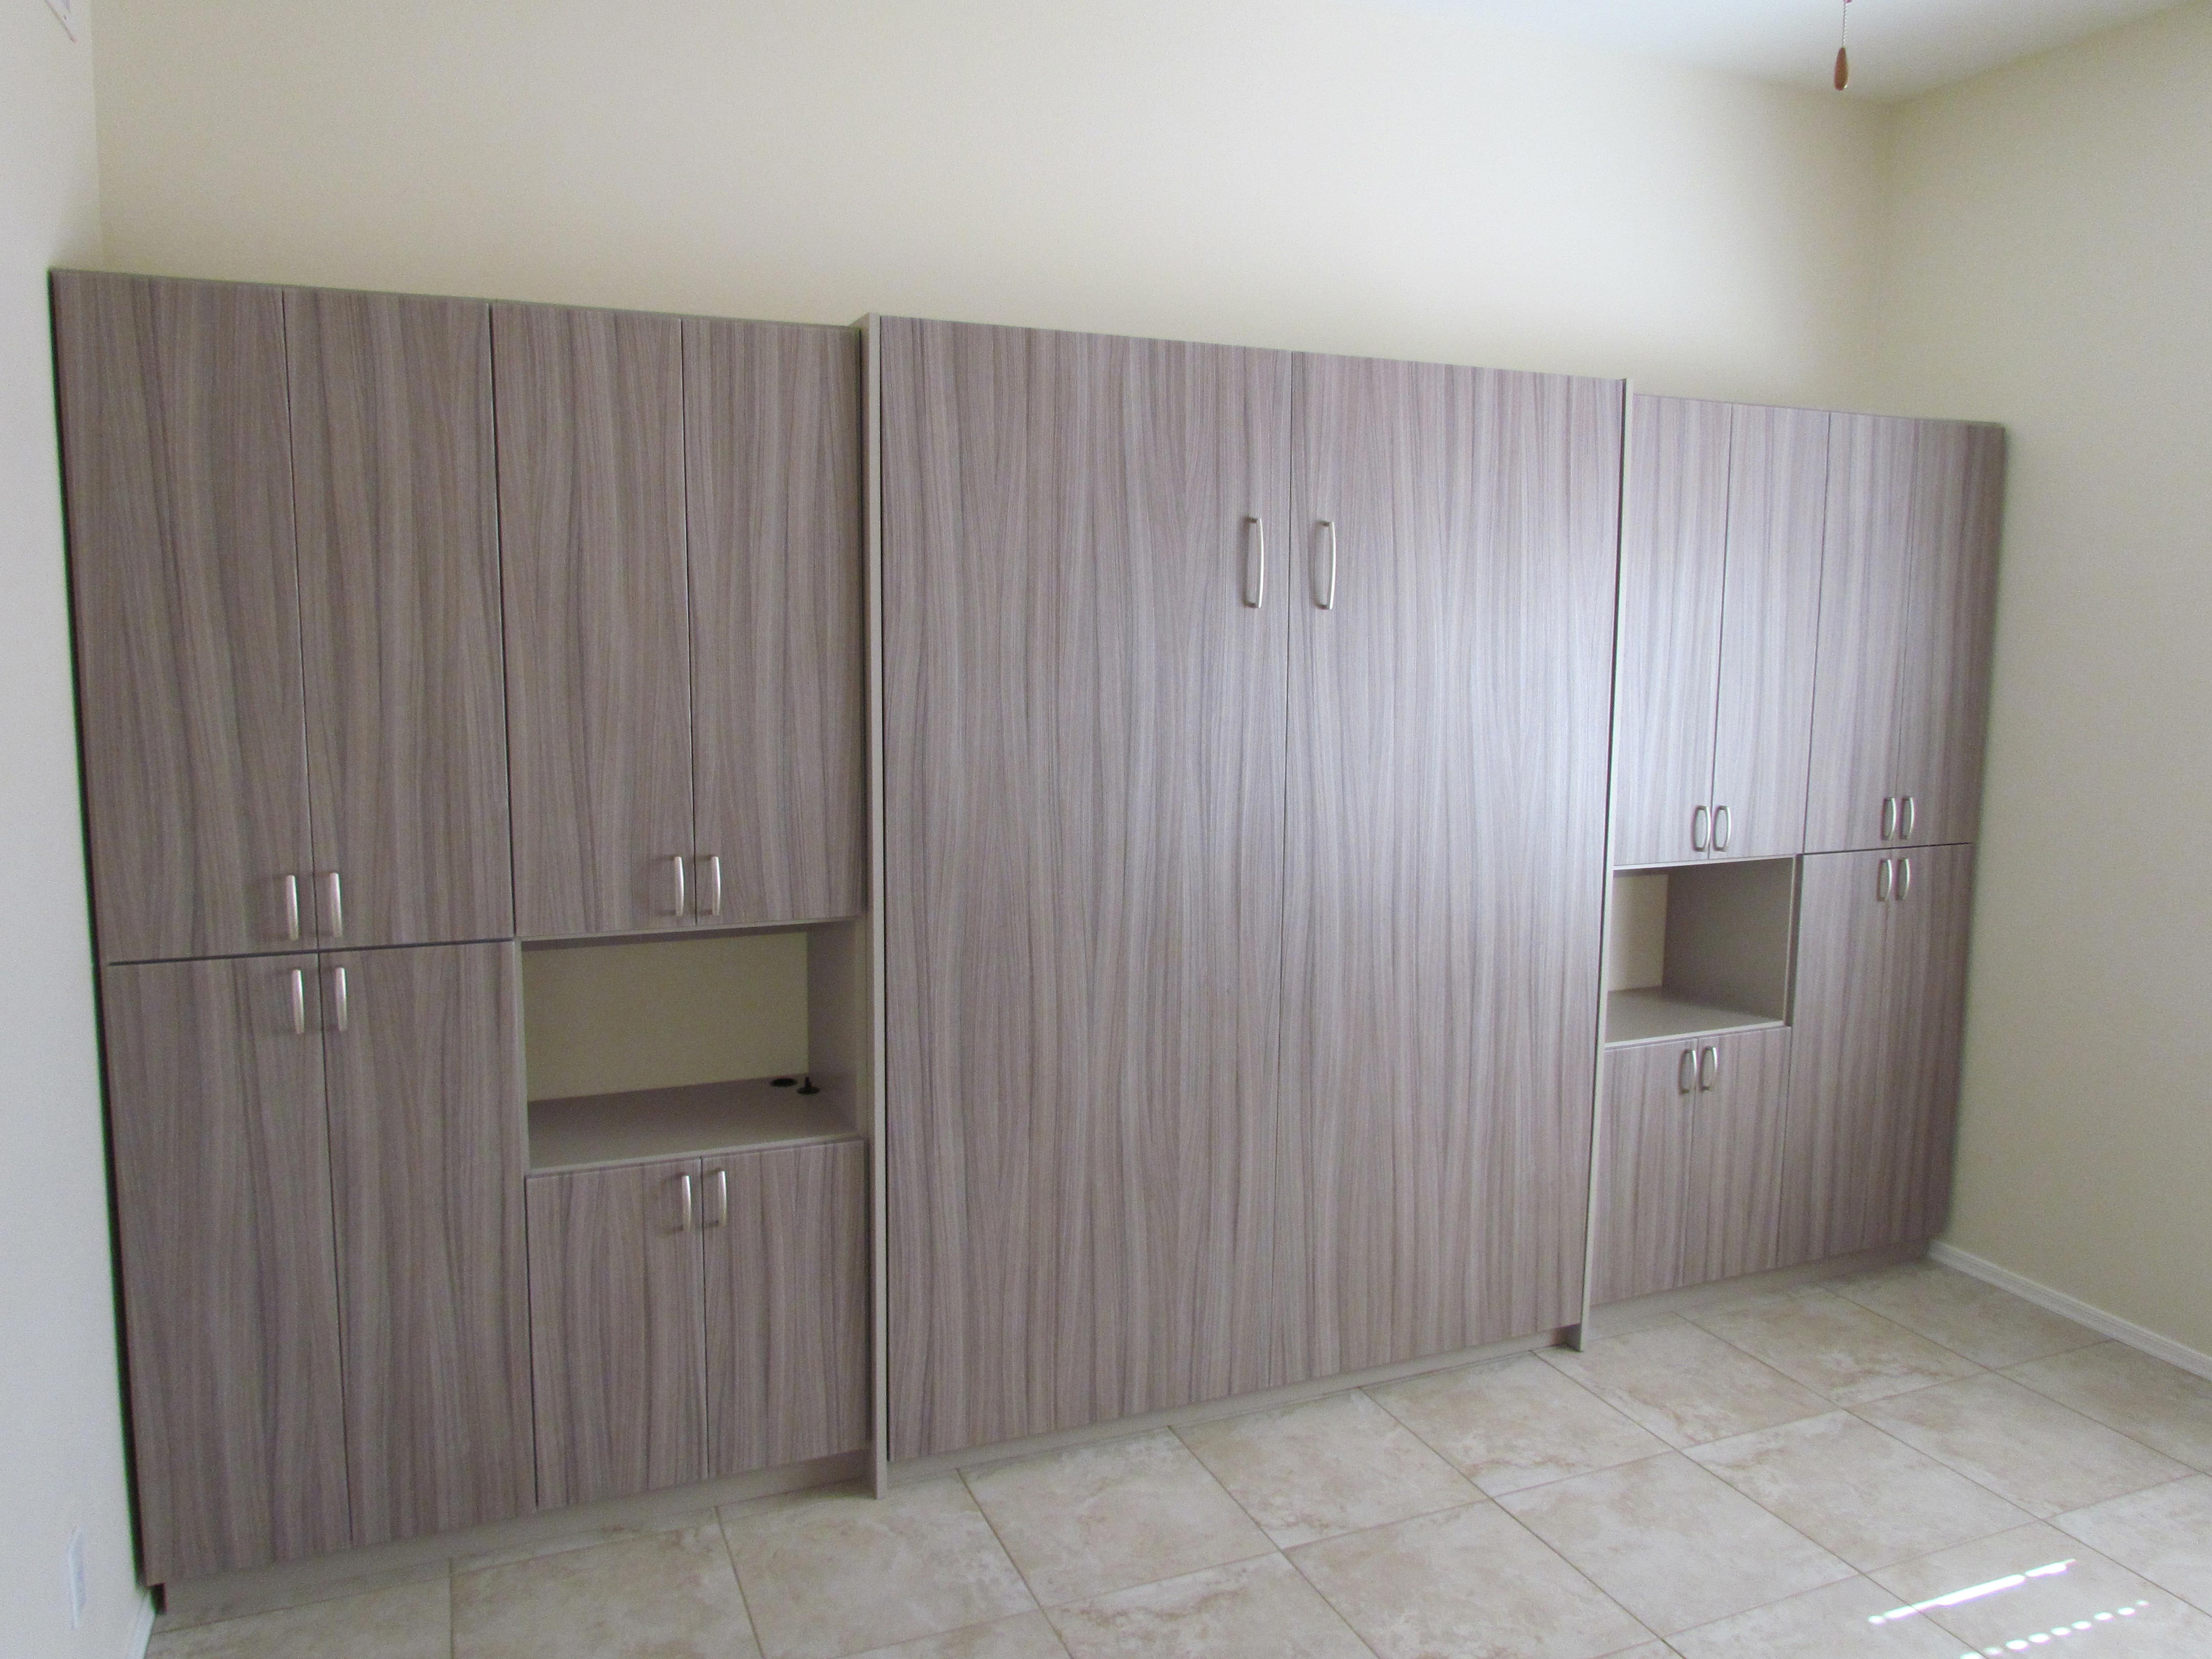 Wall bed solutions for closet trends custom closets cabinetry imagine transforming one room into two with that bed out of the way will it become an office a sewing room a yoga studio what do you have in mind amipublicfo Choice Image